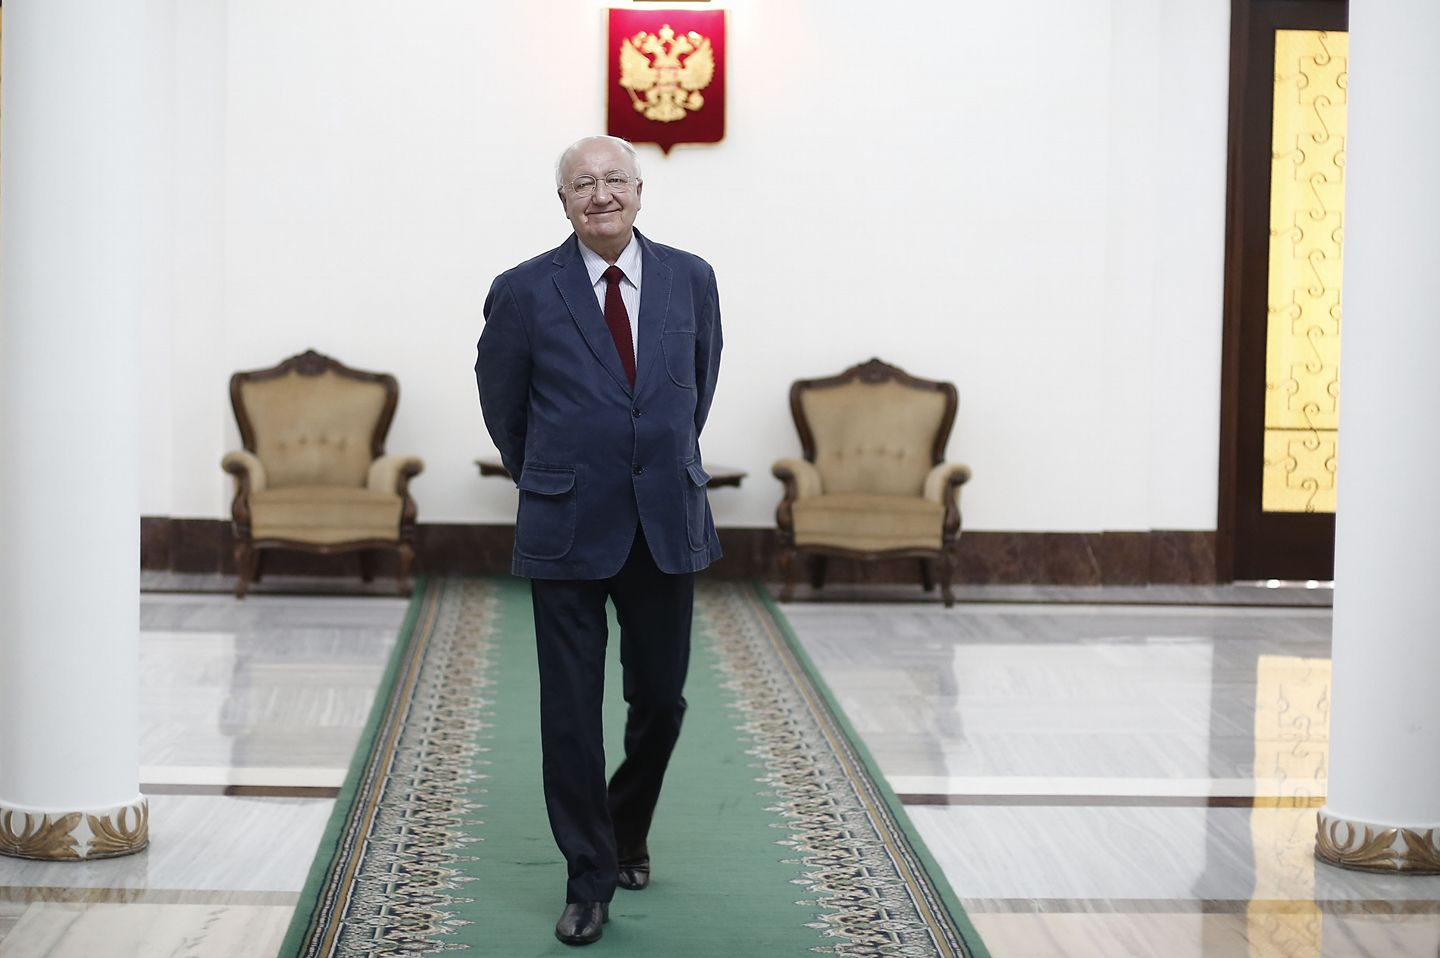 Russian Ambassador to India Alexander Kadakin passed away on the morning of Jan. 26. Source: Press Photo